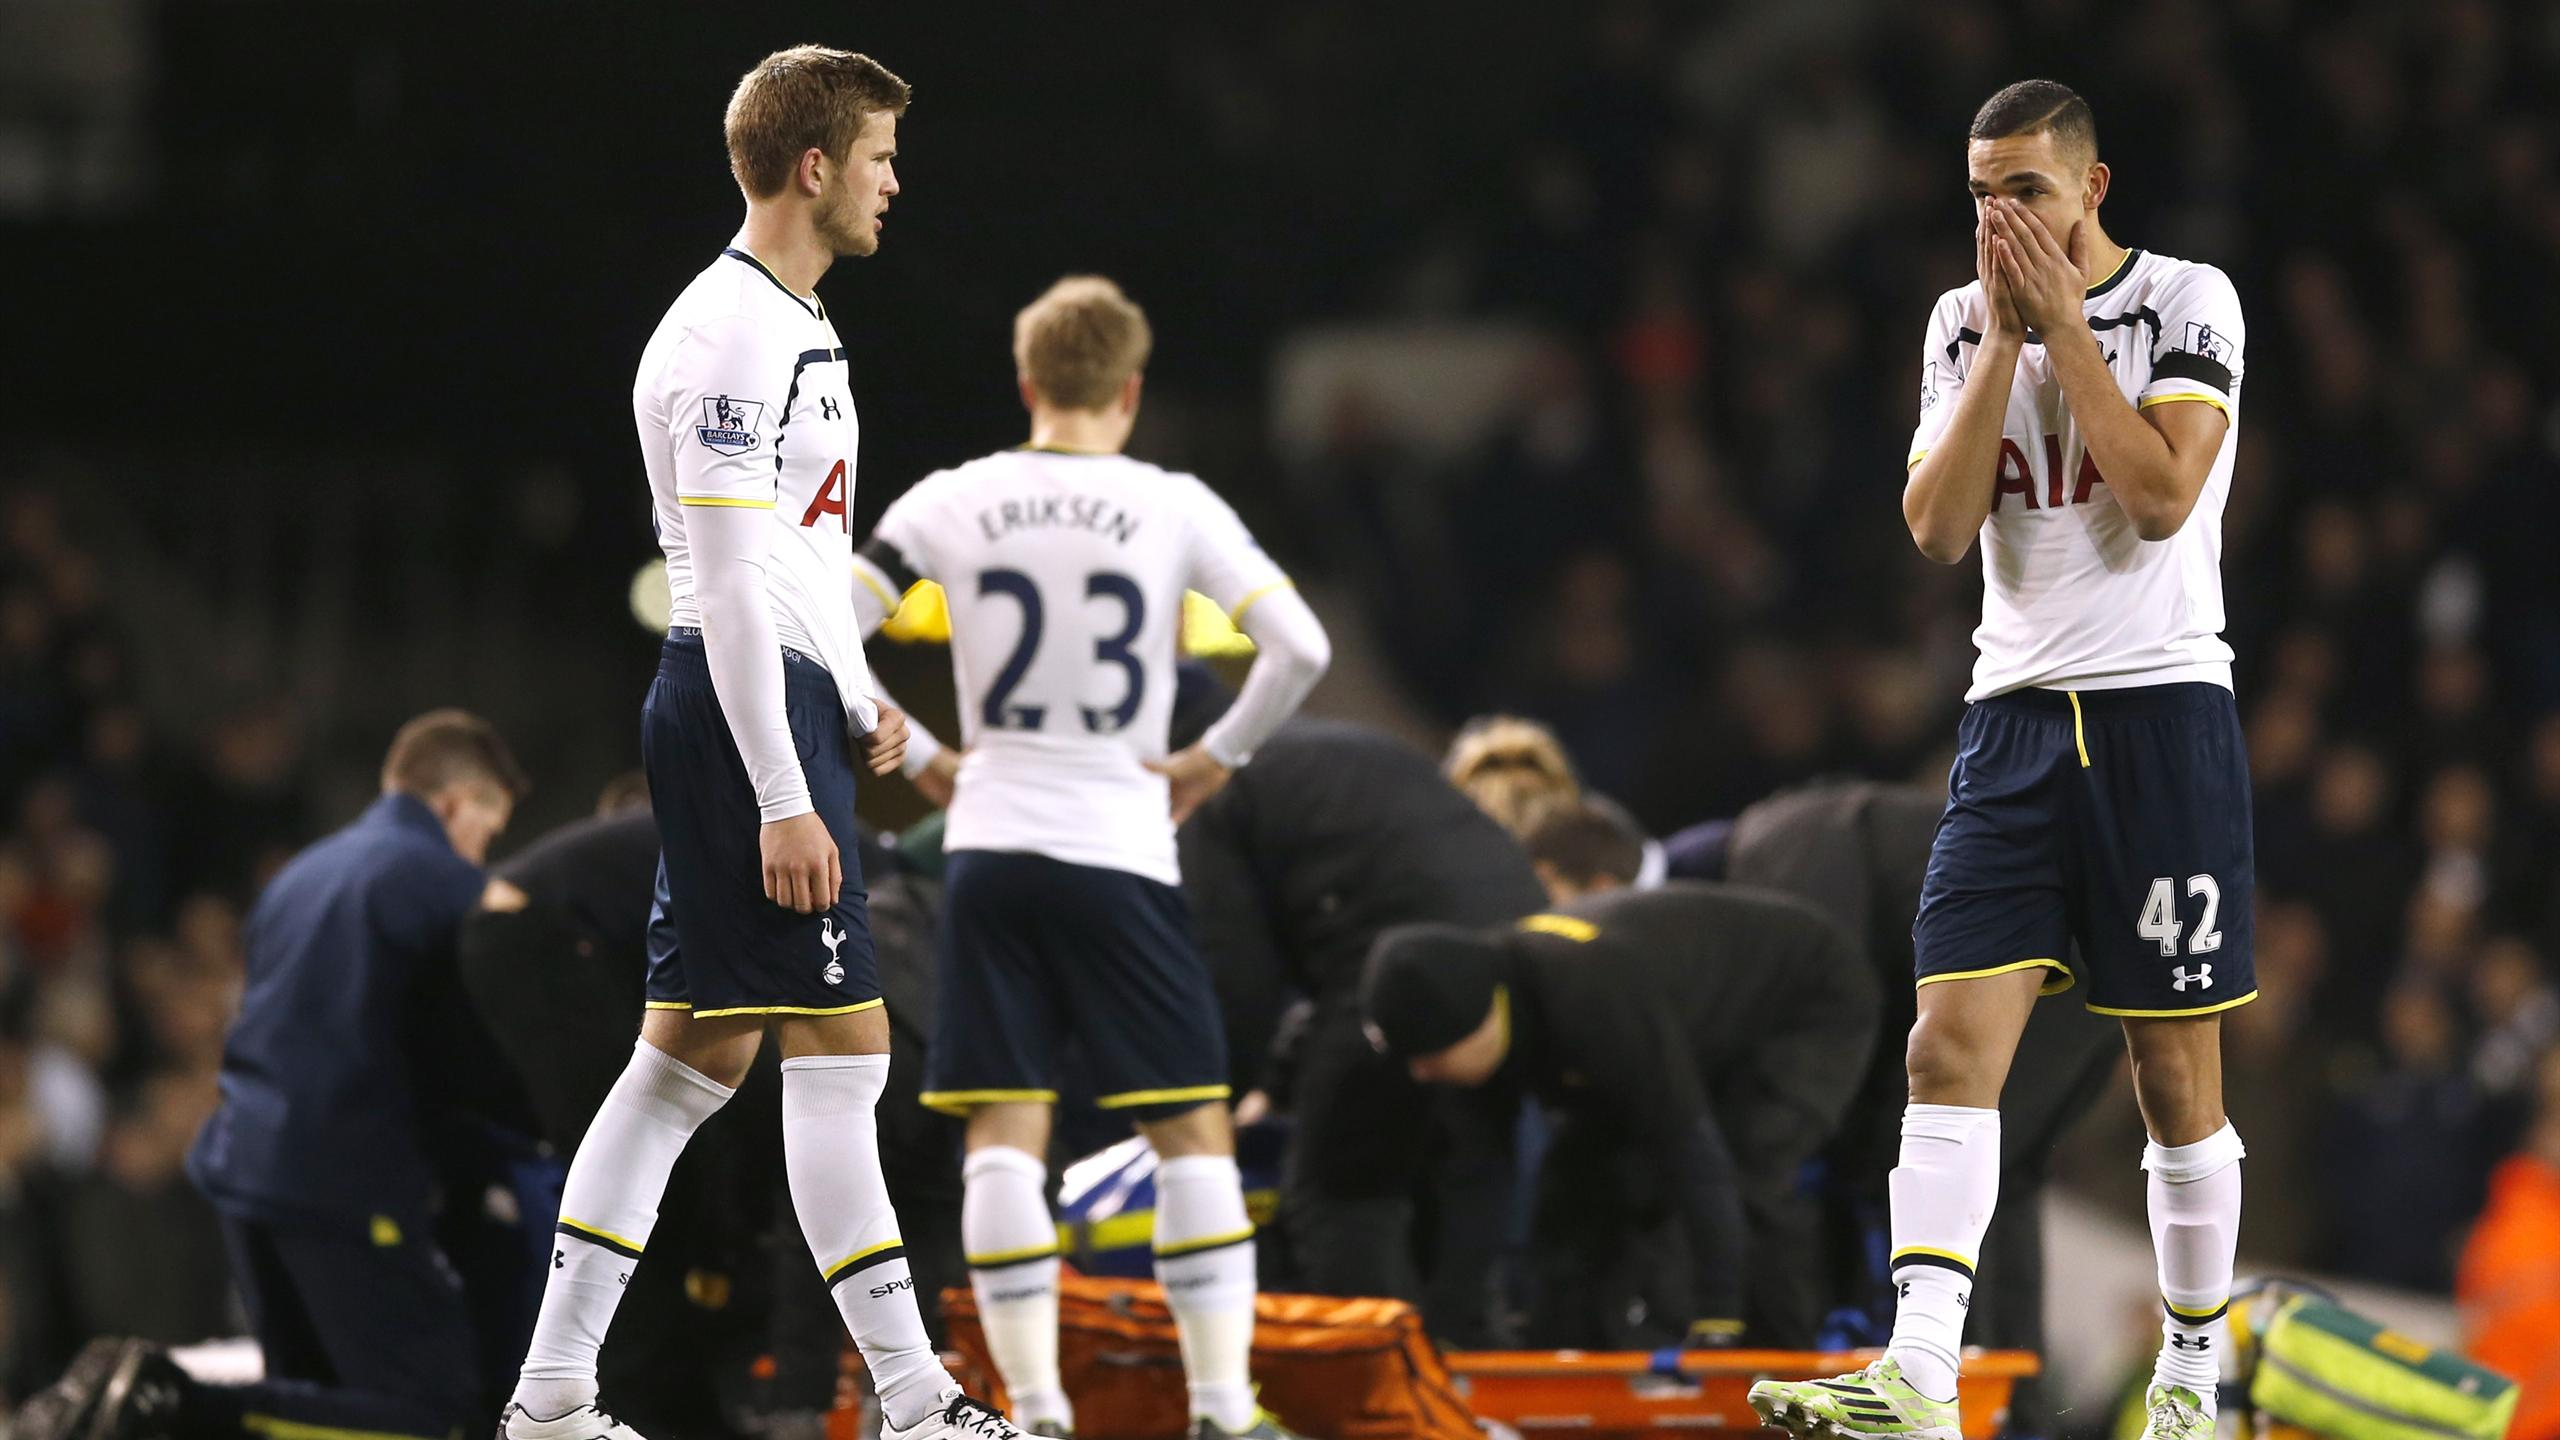 Video: Tottenham Hotspur vs Swansea City